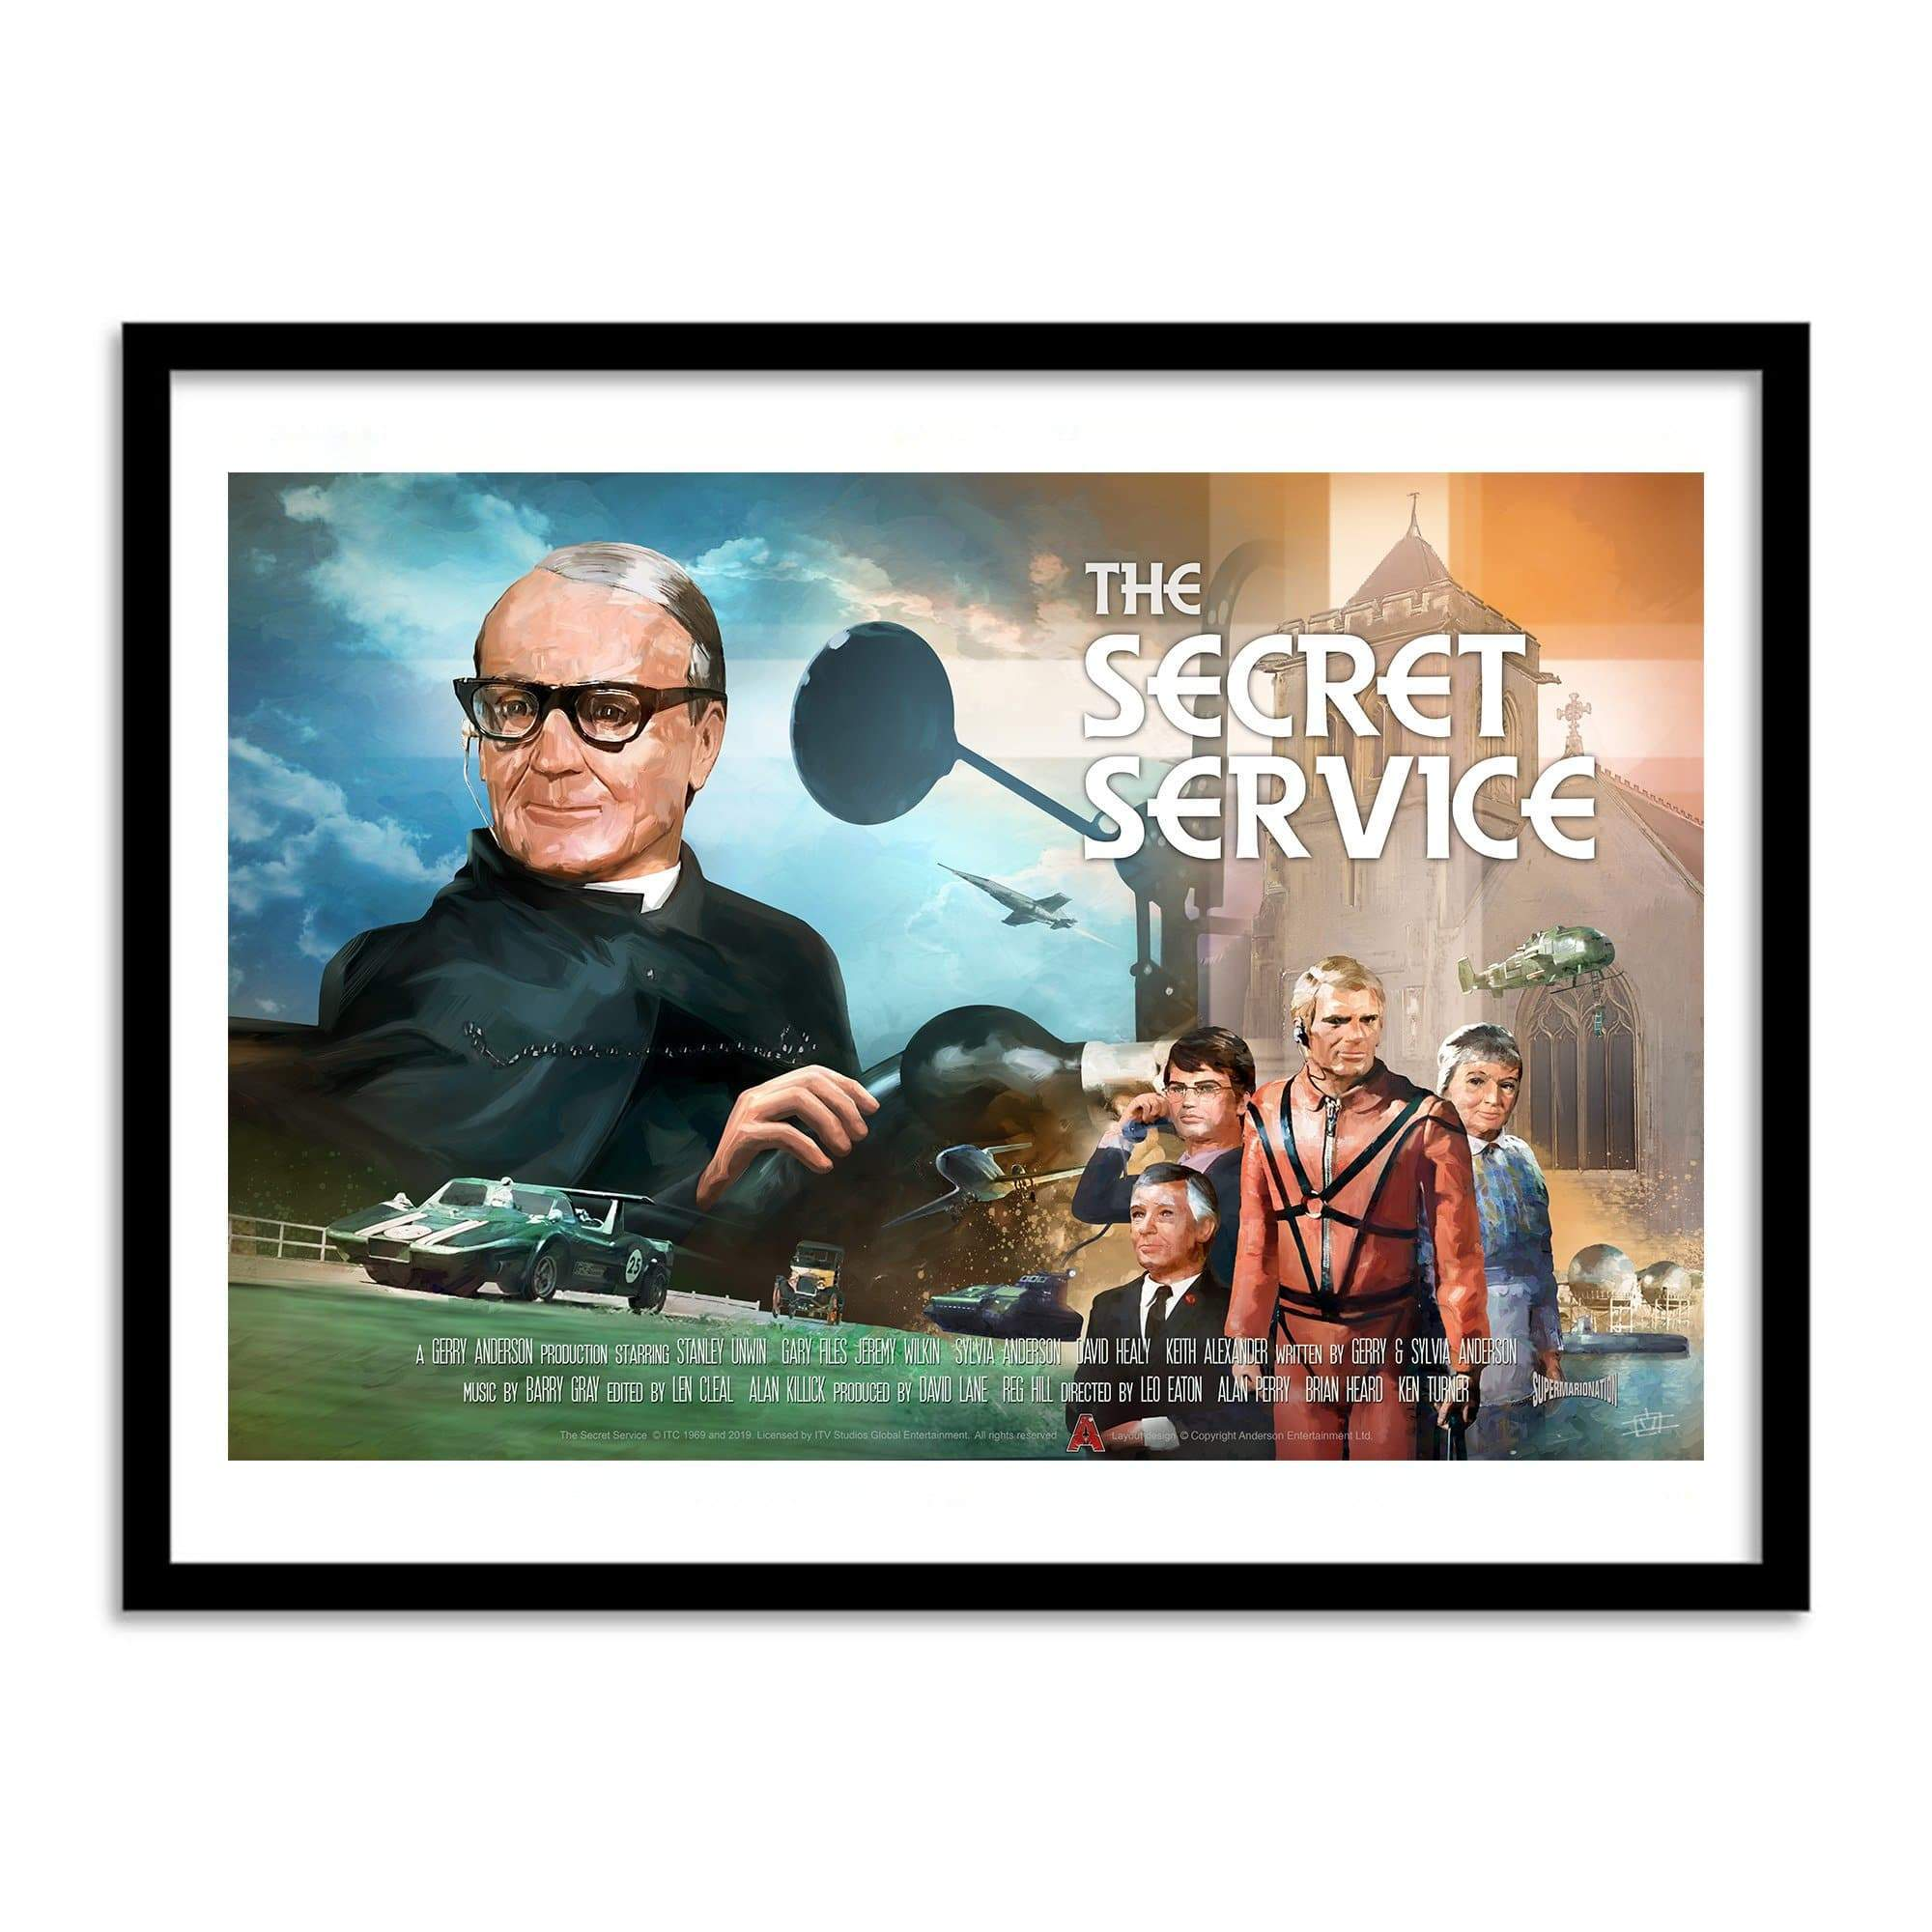 The Secret Service Poster [Official & Exclusive] - The Gerry Anderson Store